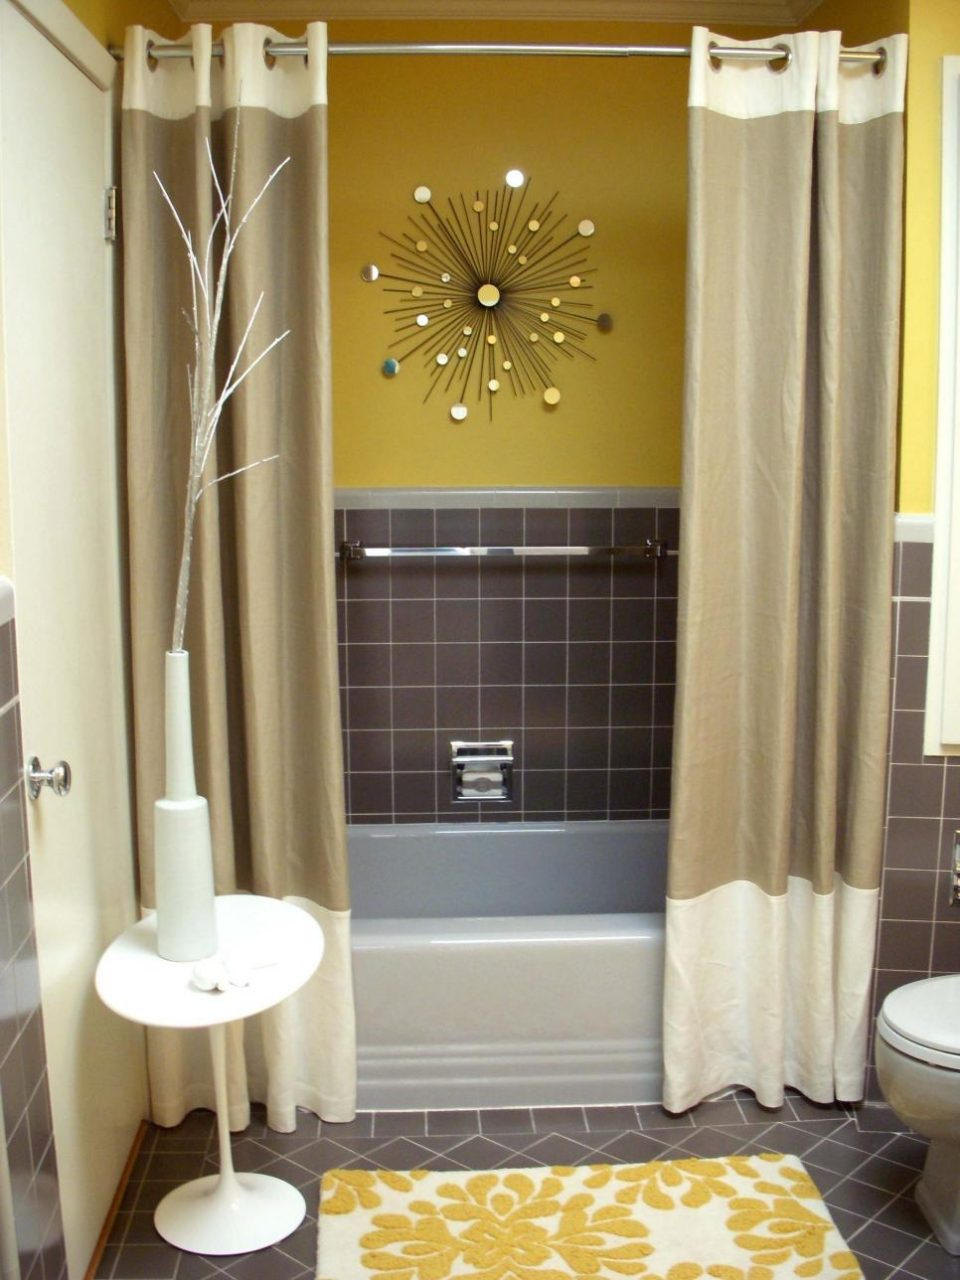 Bathrooms On A Budget Our 10 Favorites From Rate My Space Diy New